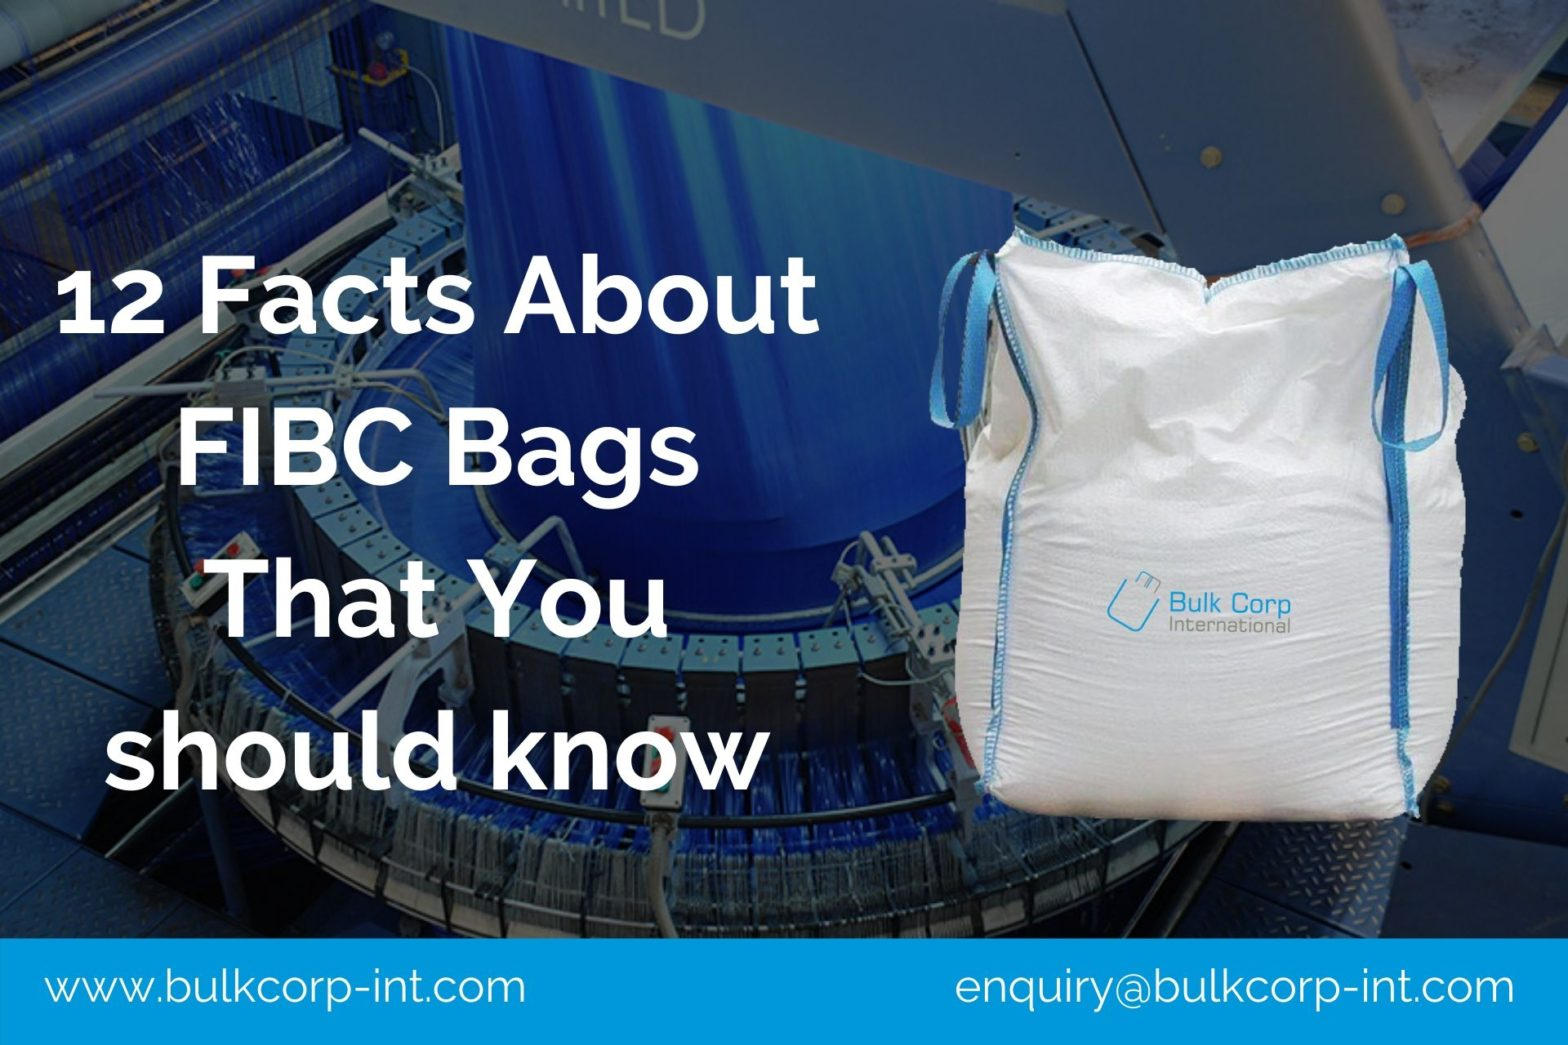 12 Facts About FIBC Bags That You should know